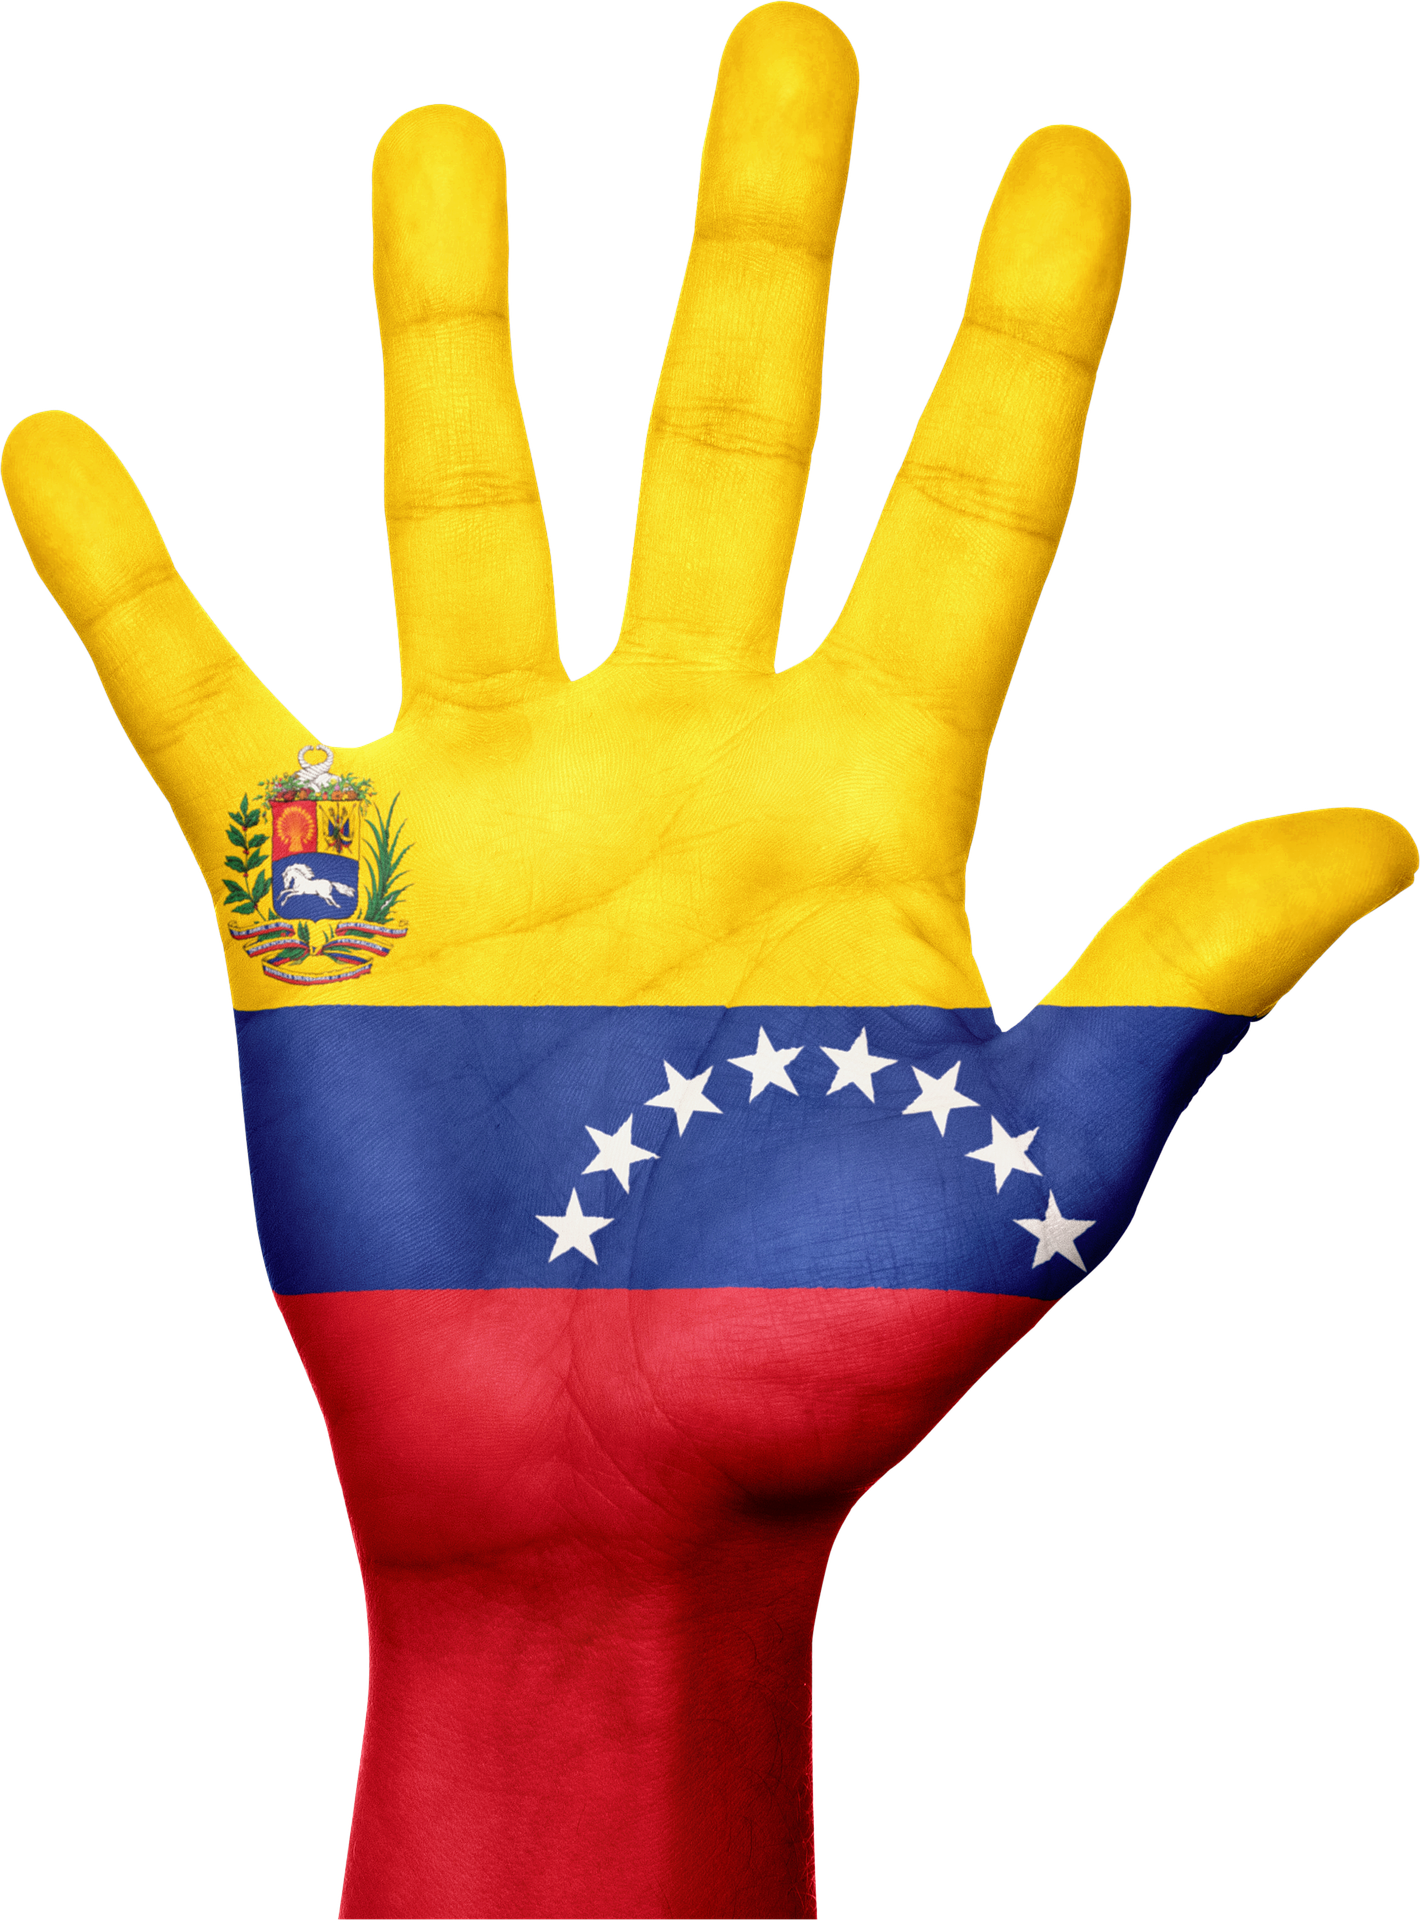 Venezuela: The Road Forward